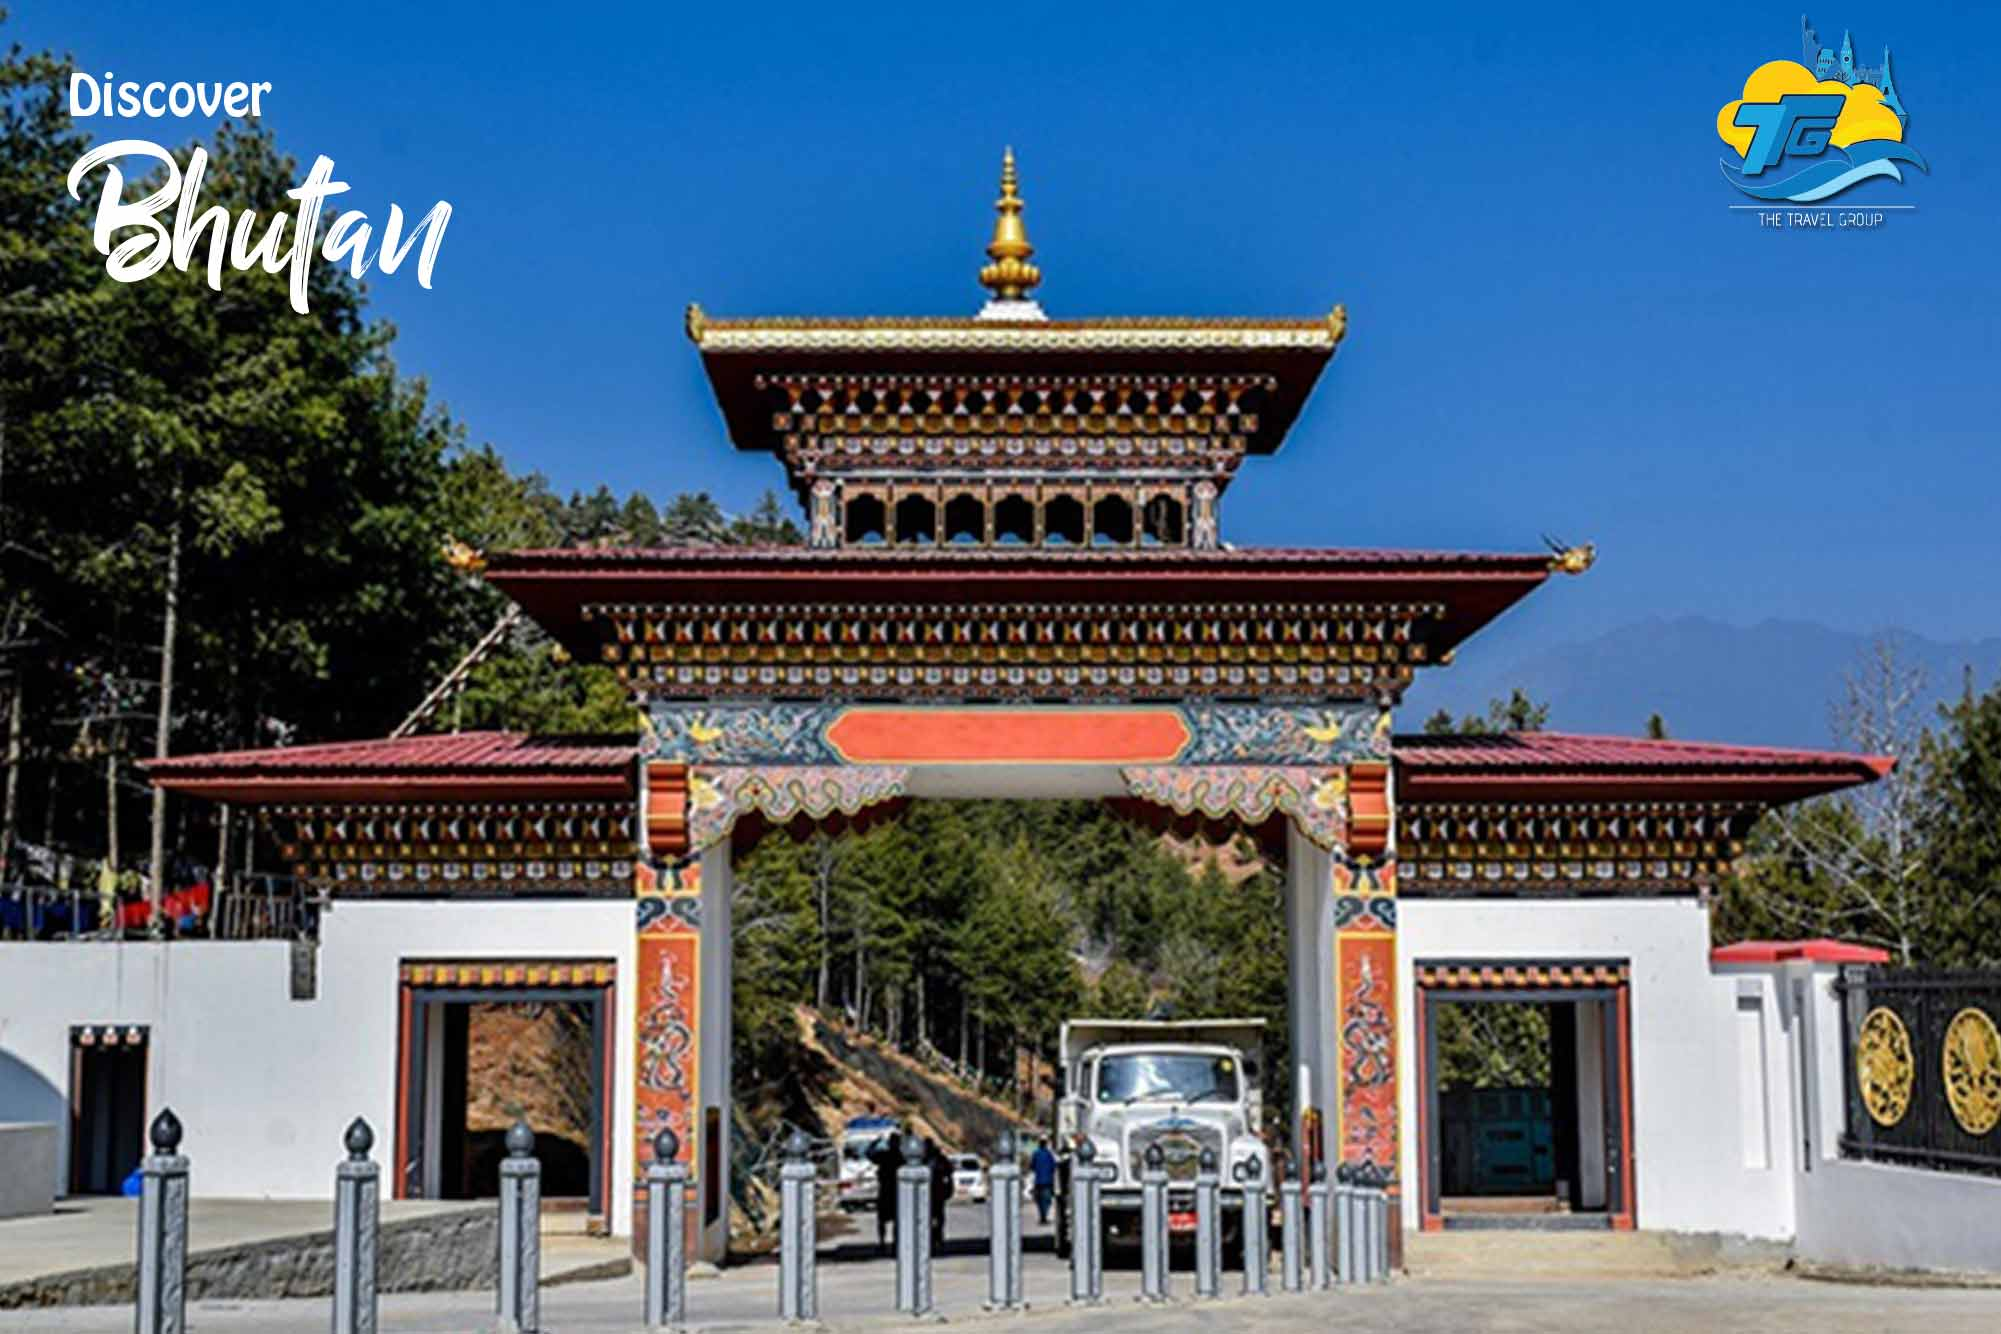 Offer & Packages for Bhutan